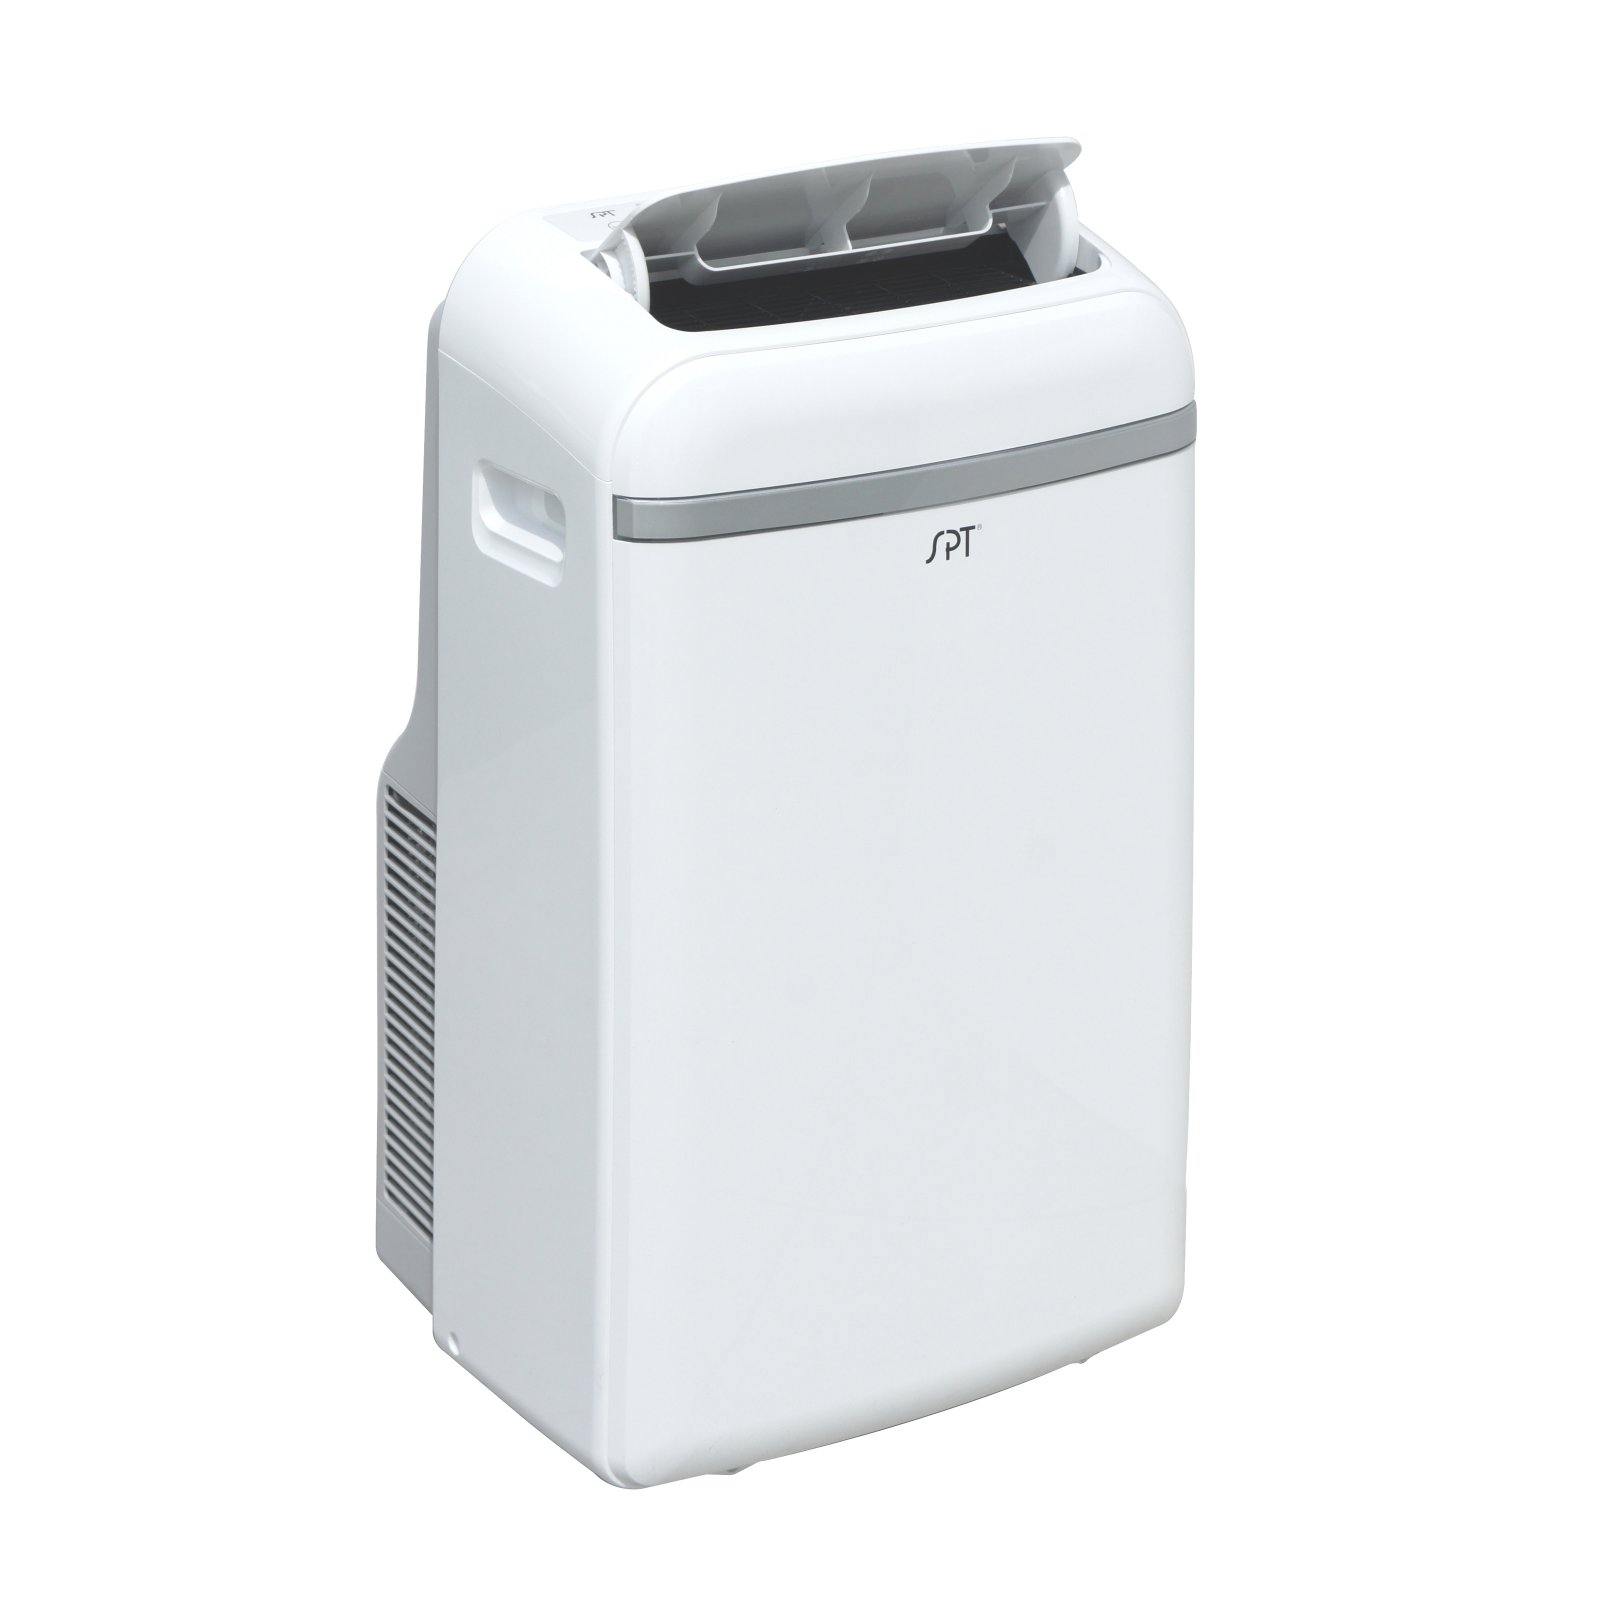 Sunpentown WA-1420H 14,000-BTU Room Portable Air Conditioner with Supplemental 11,000-BTU Heater